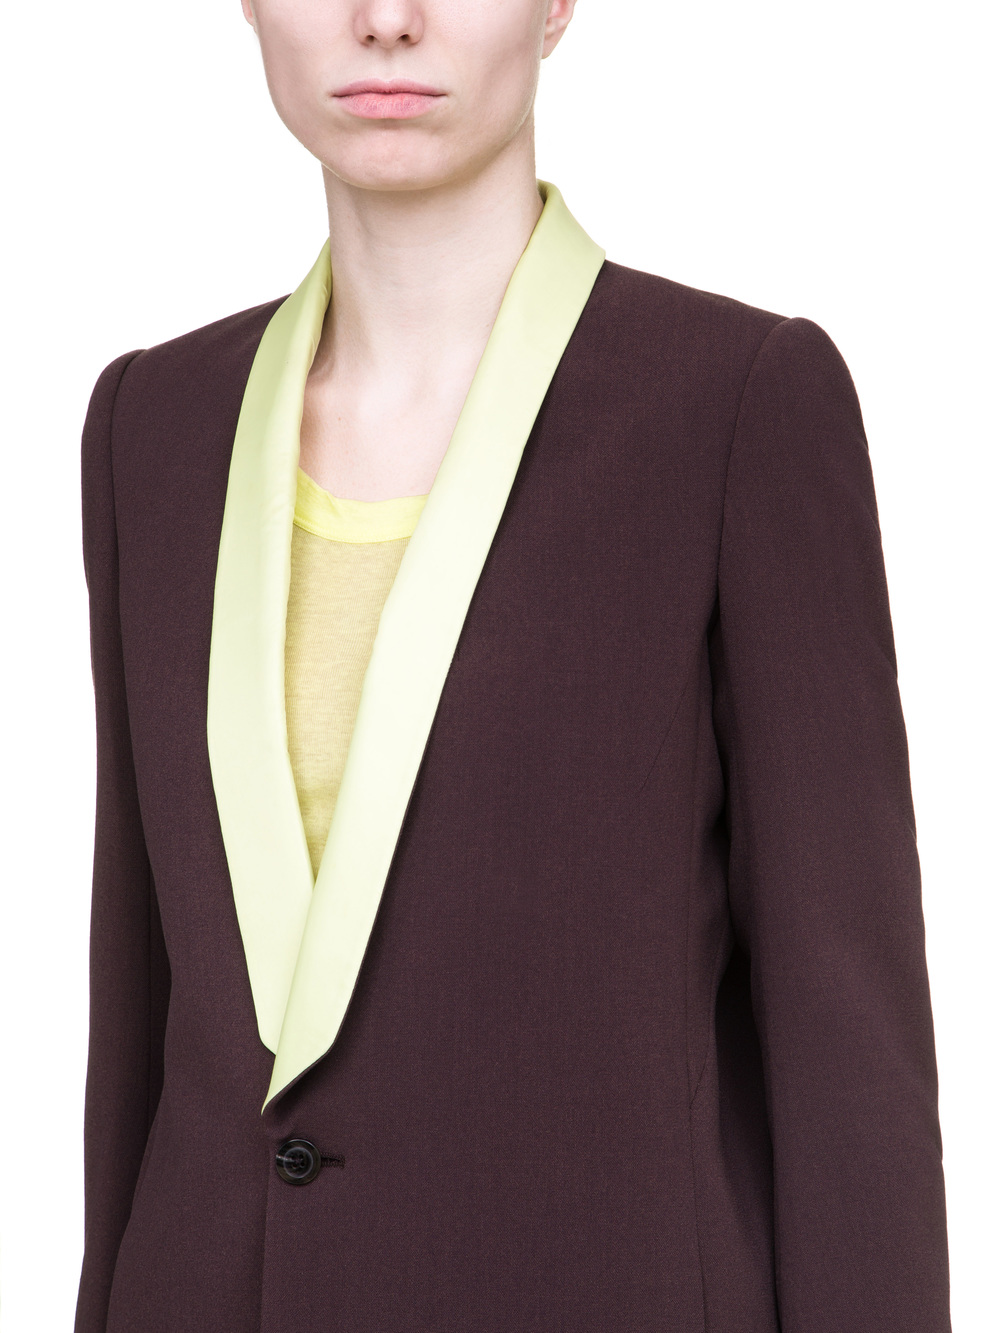 RICK OWENS TUSK BLAZER IN PURPLE CREPE WOOL FEATURES  A  YELLOW SHAWL LAPEL